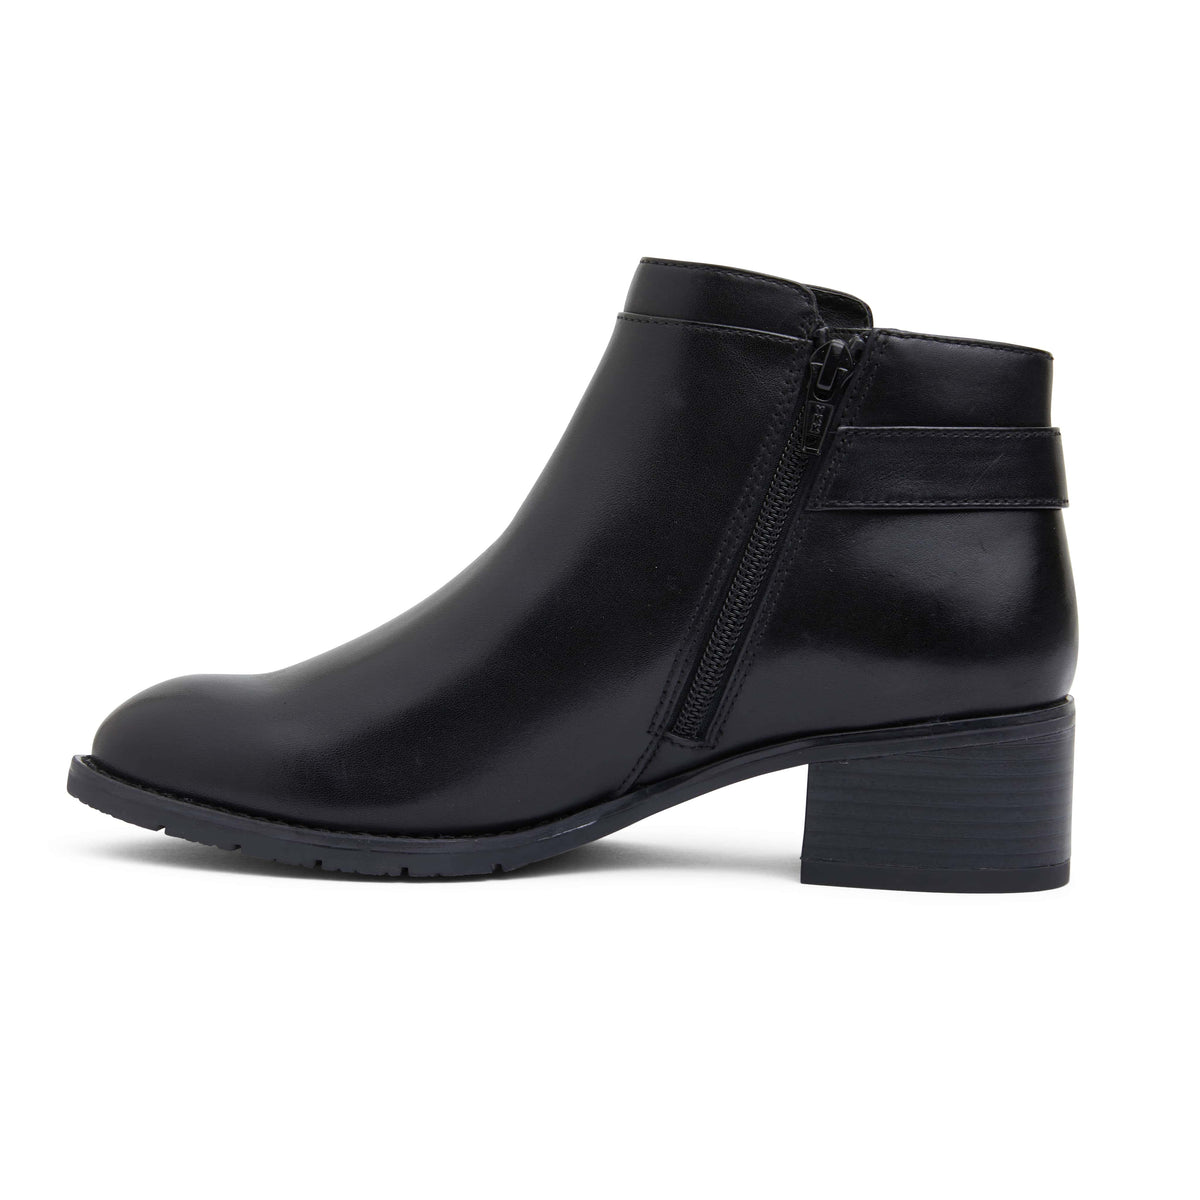 Fresco Boot in Black Leather